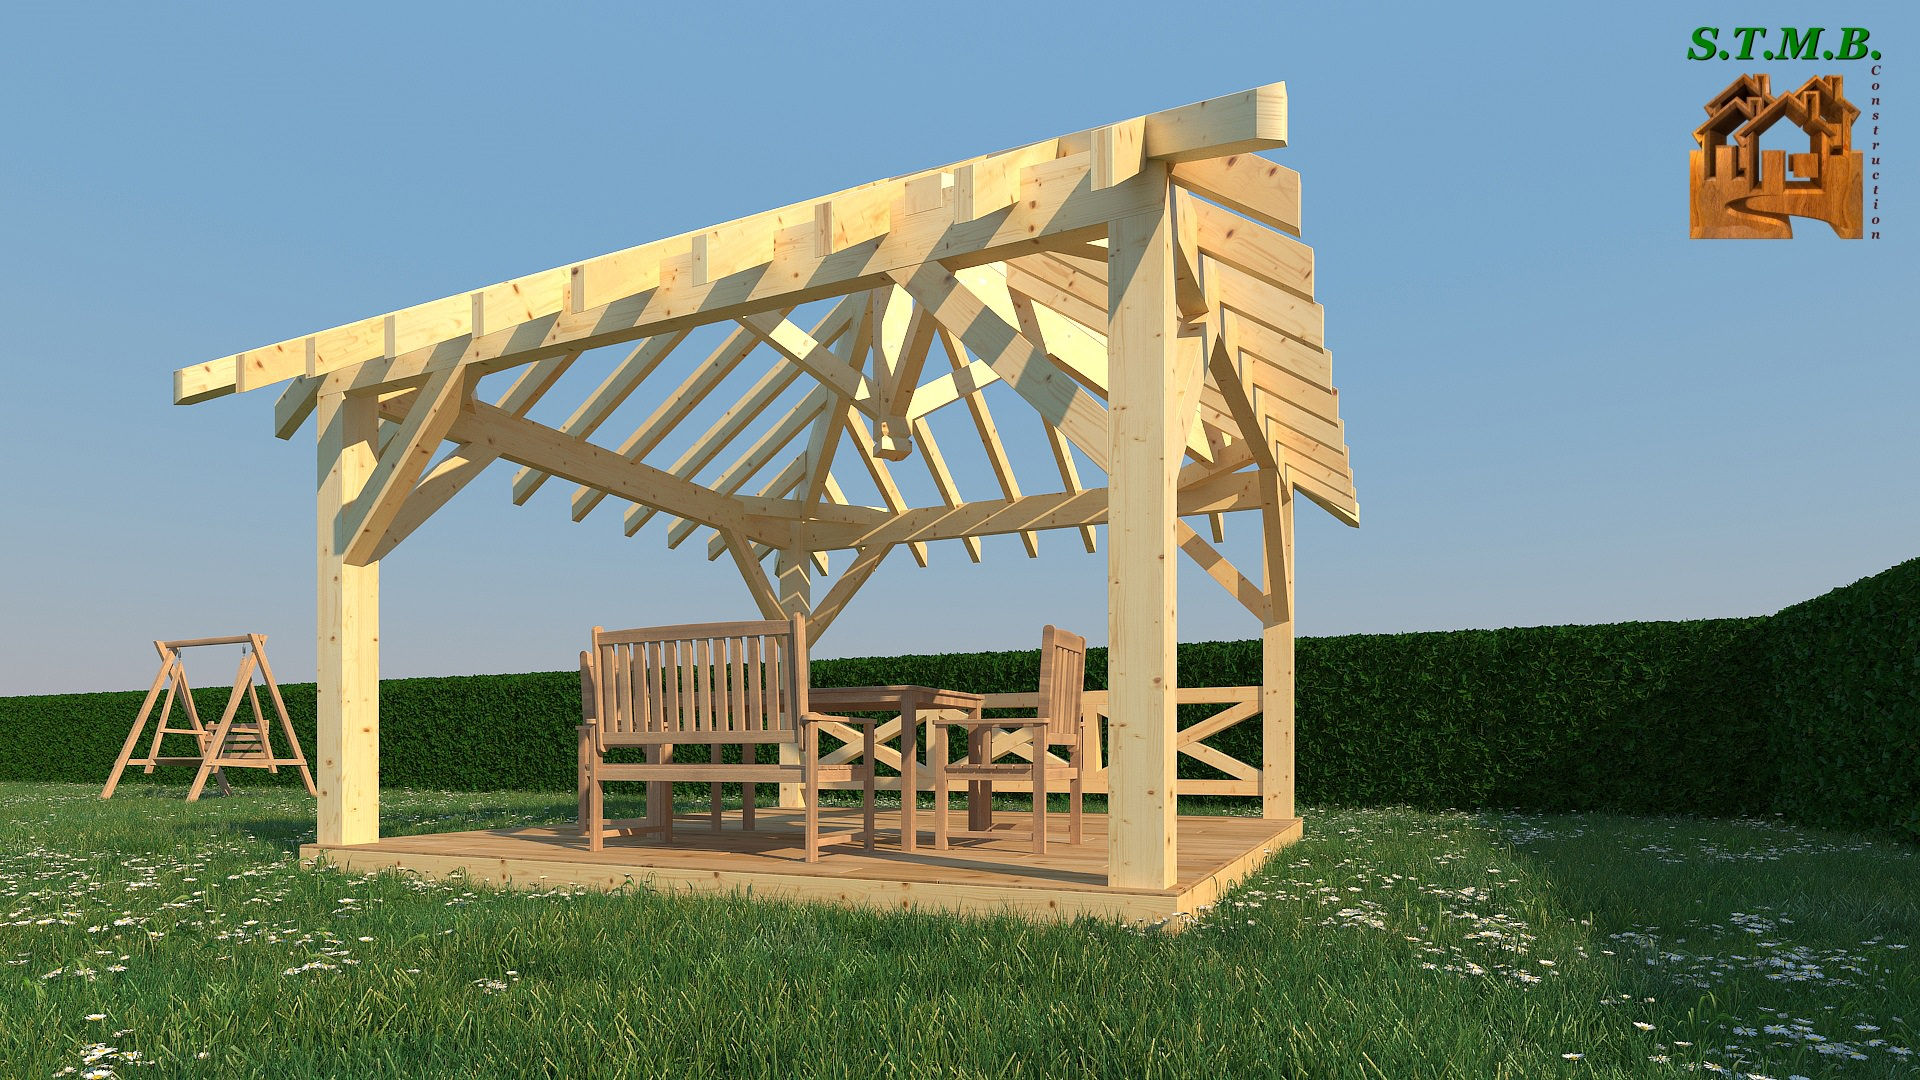 faire une pergola motivant faire une pergola en bois les styles de pergola pergolas et. Black Bedroom Furniture Sets. Home Design Ideas